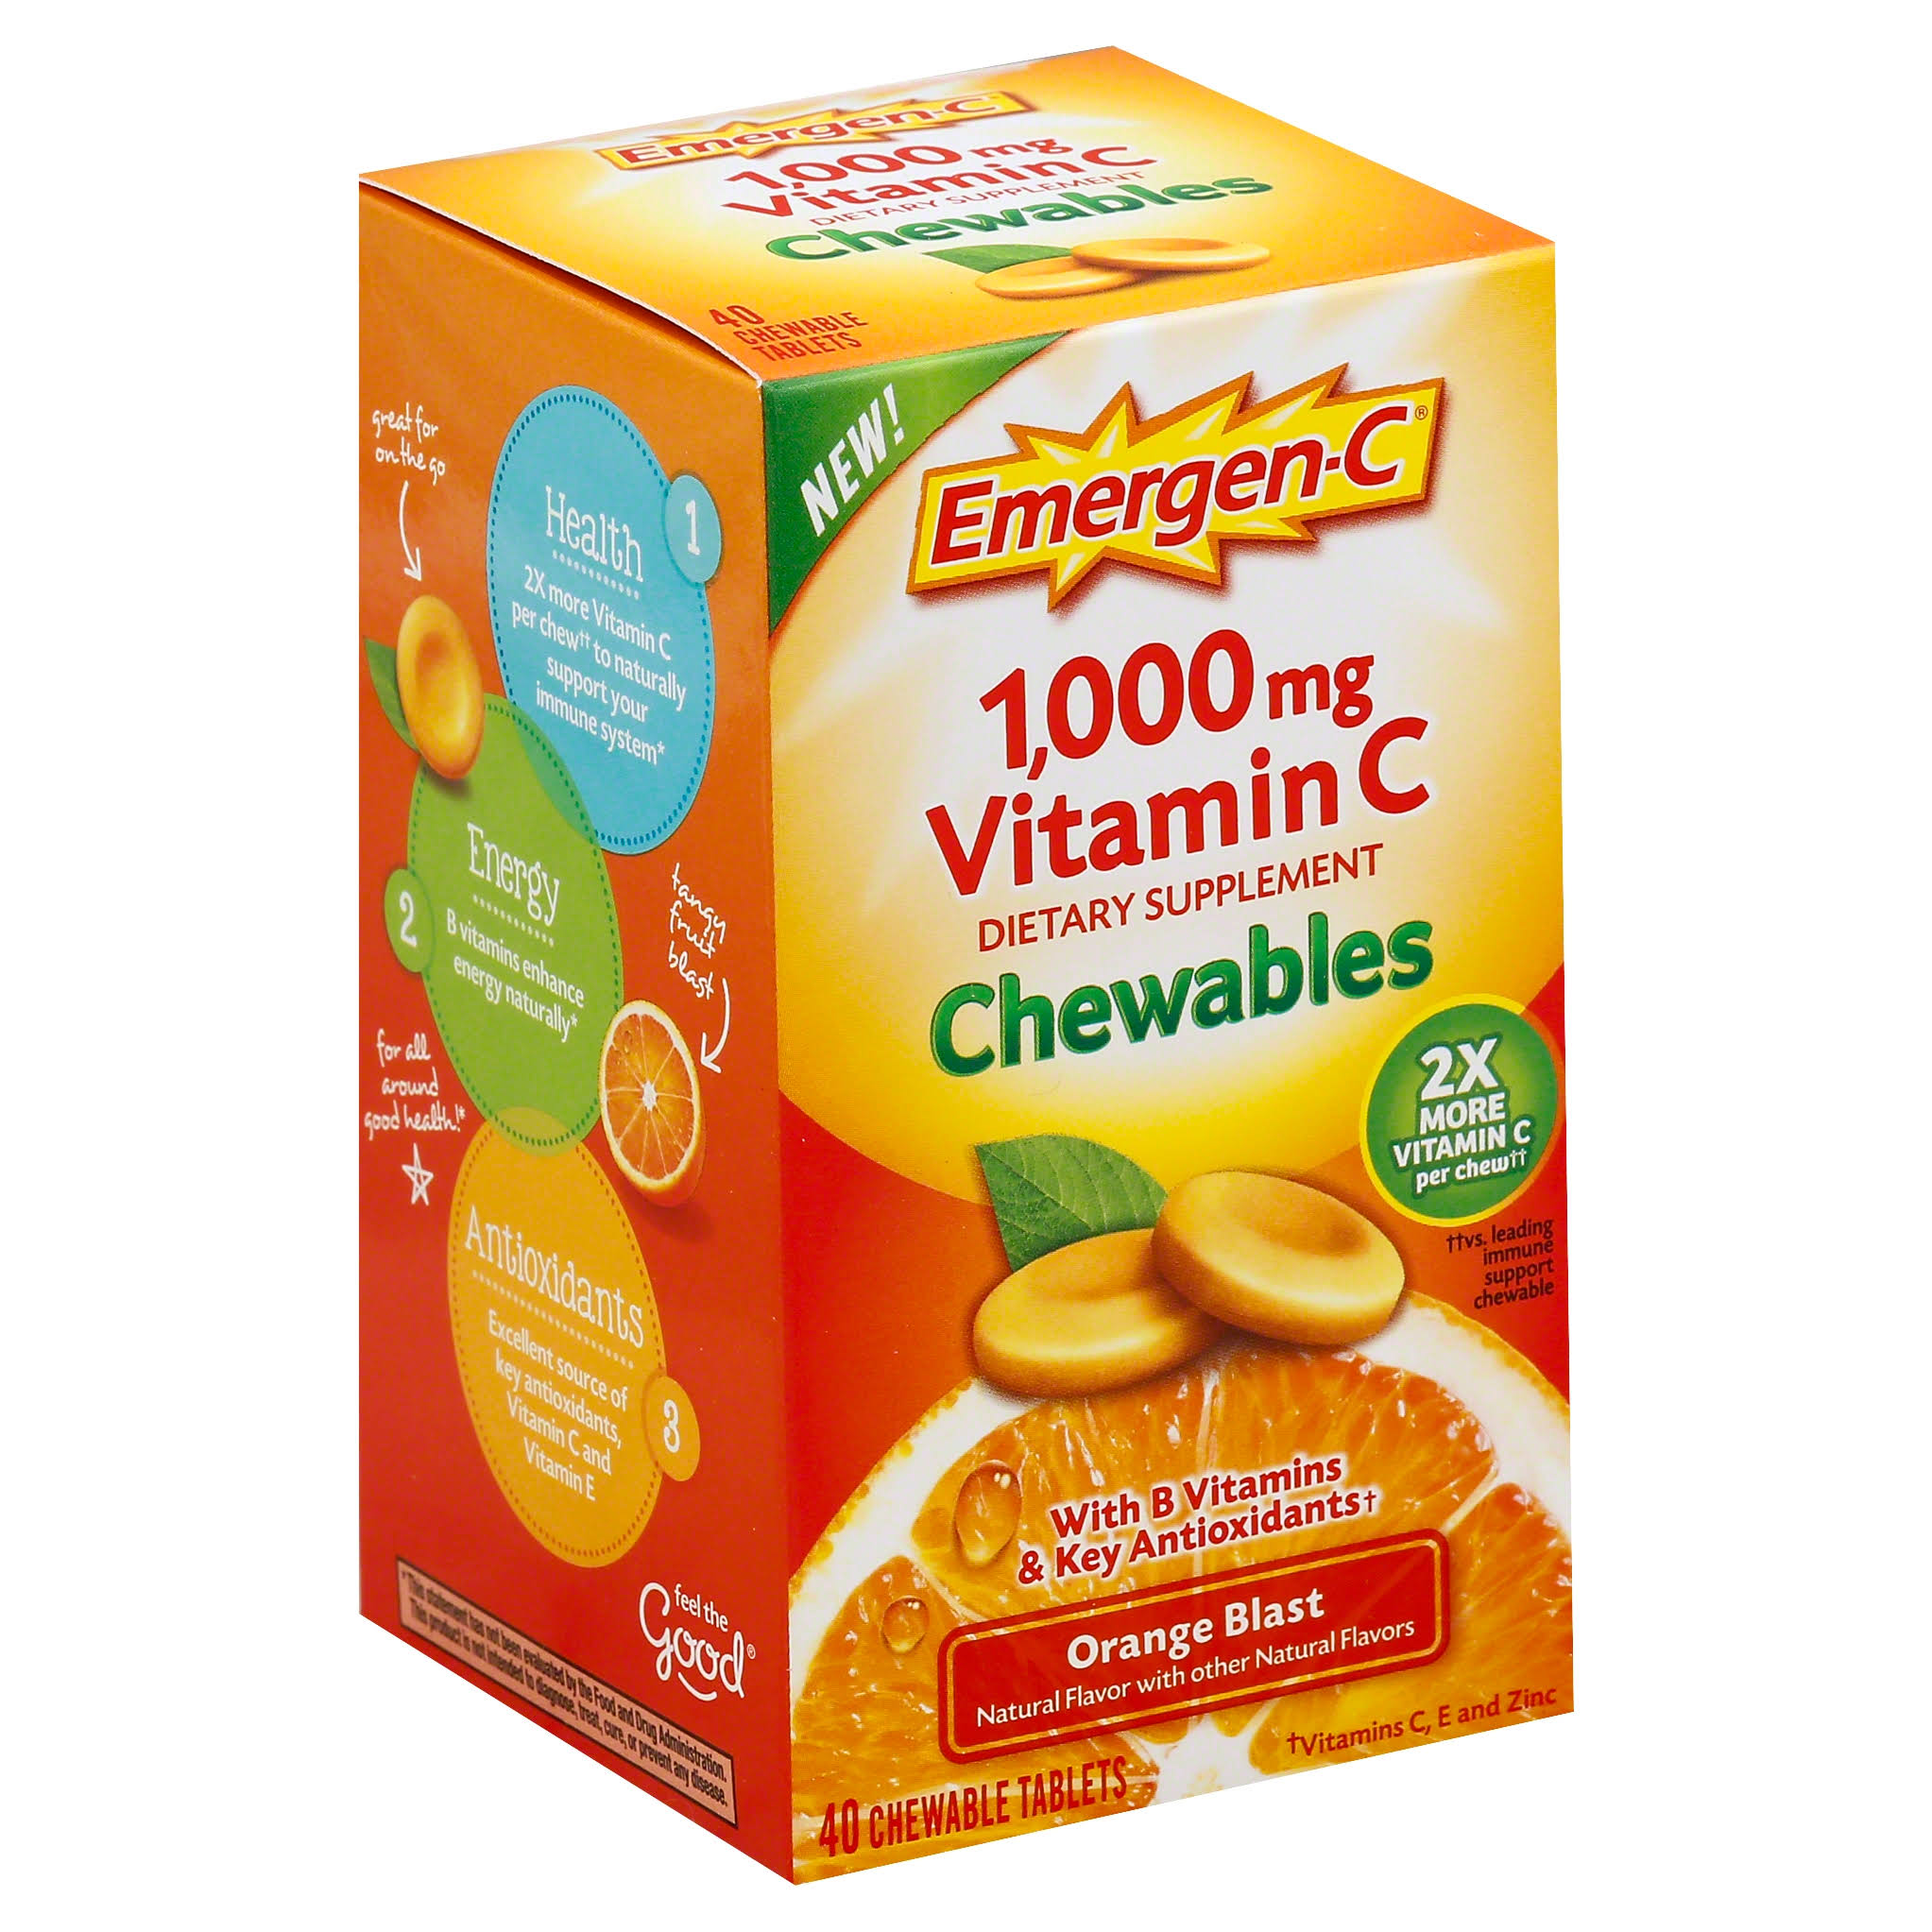 Emergen-C 1000mg Vitamin C Chewable Tablets - Orange, x40